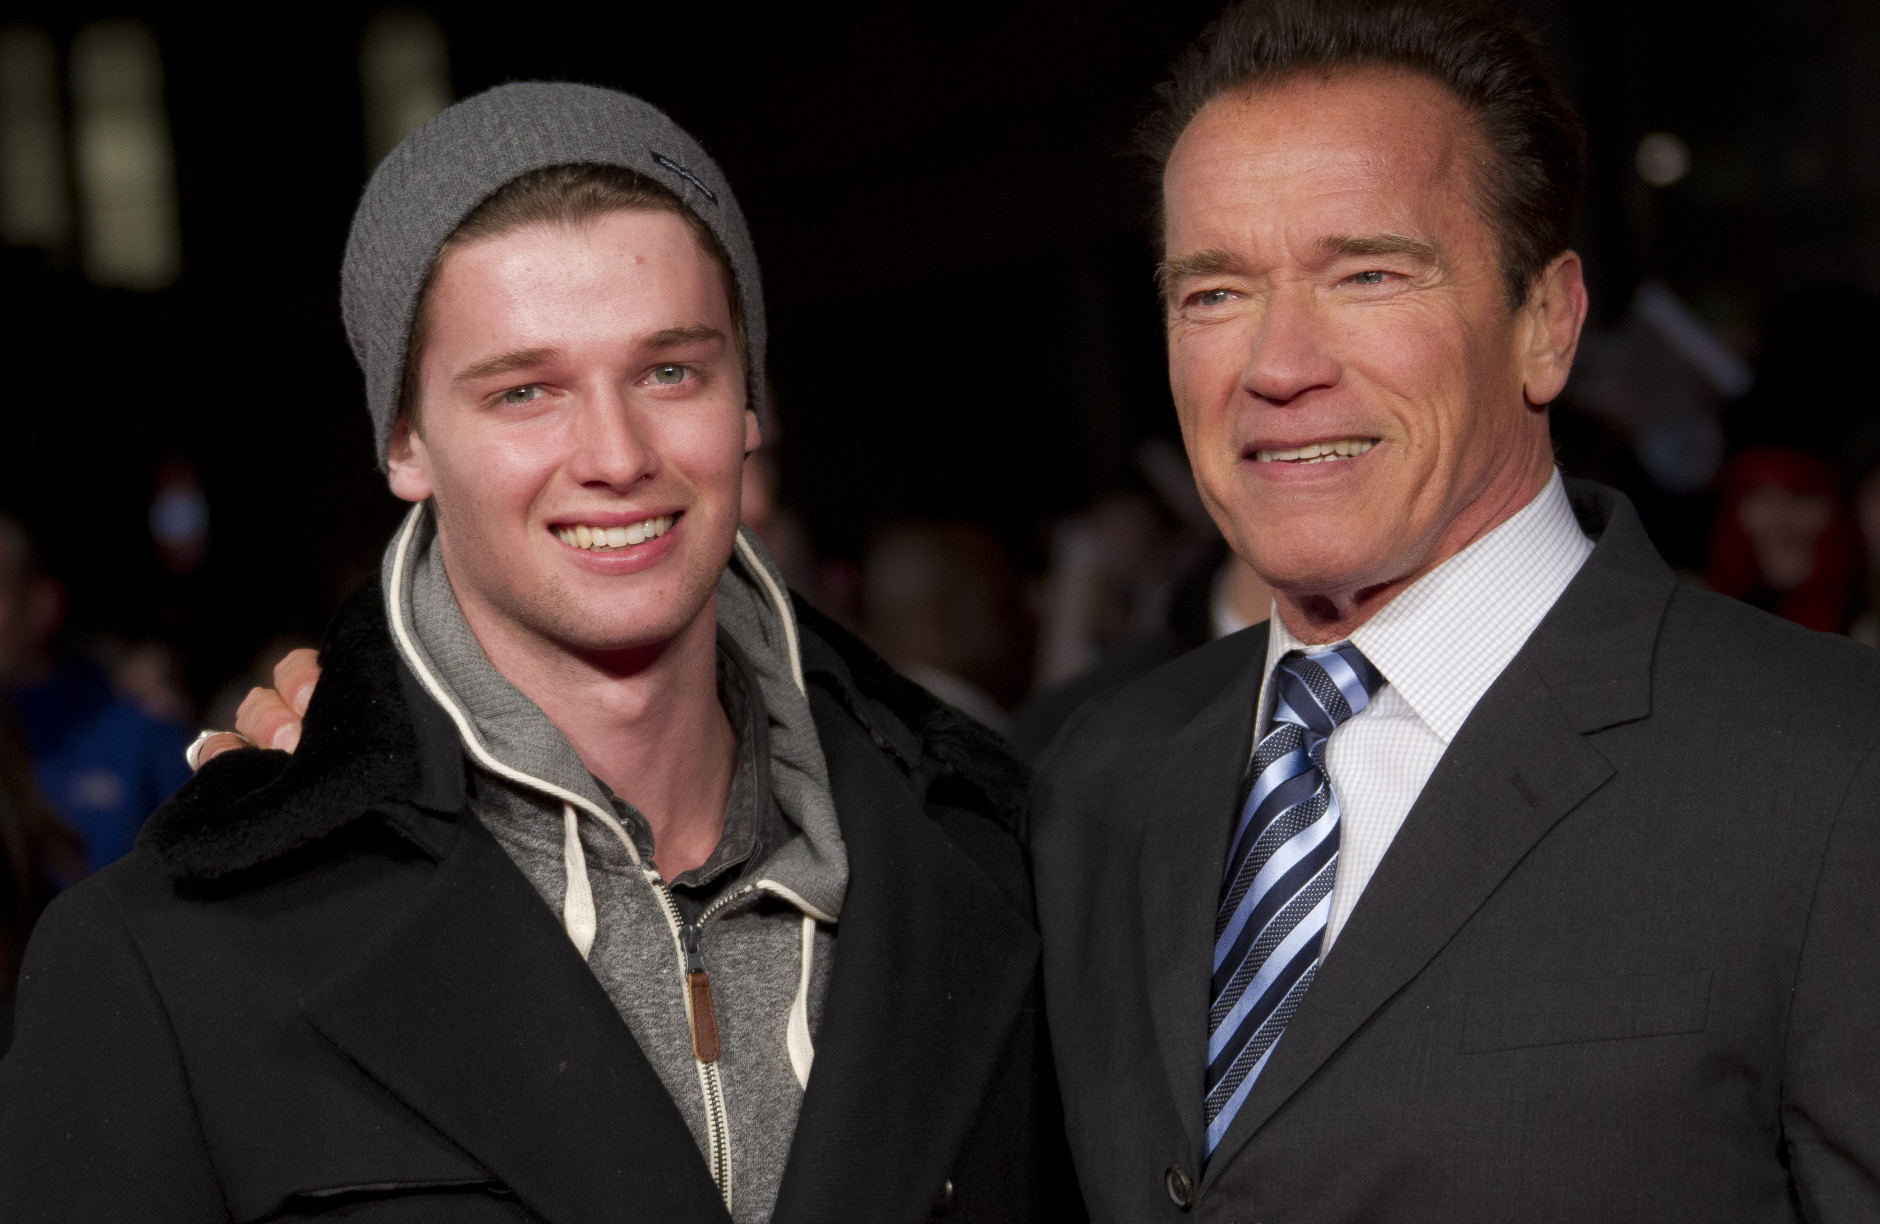 Arnold Schwarzenegger and son Patrick, left, arrive for the European Premiere of The Last Stand at a central London cinema in Leicester Square, Tuesday, Jan. 22, 2013. (Photo by Joel Ryan/Invision/AP)